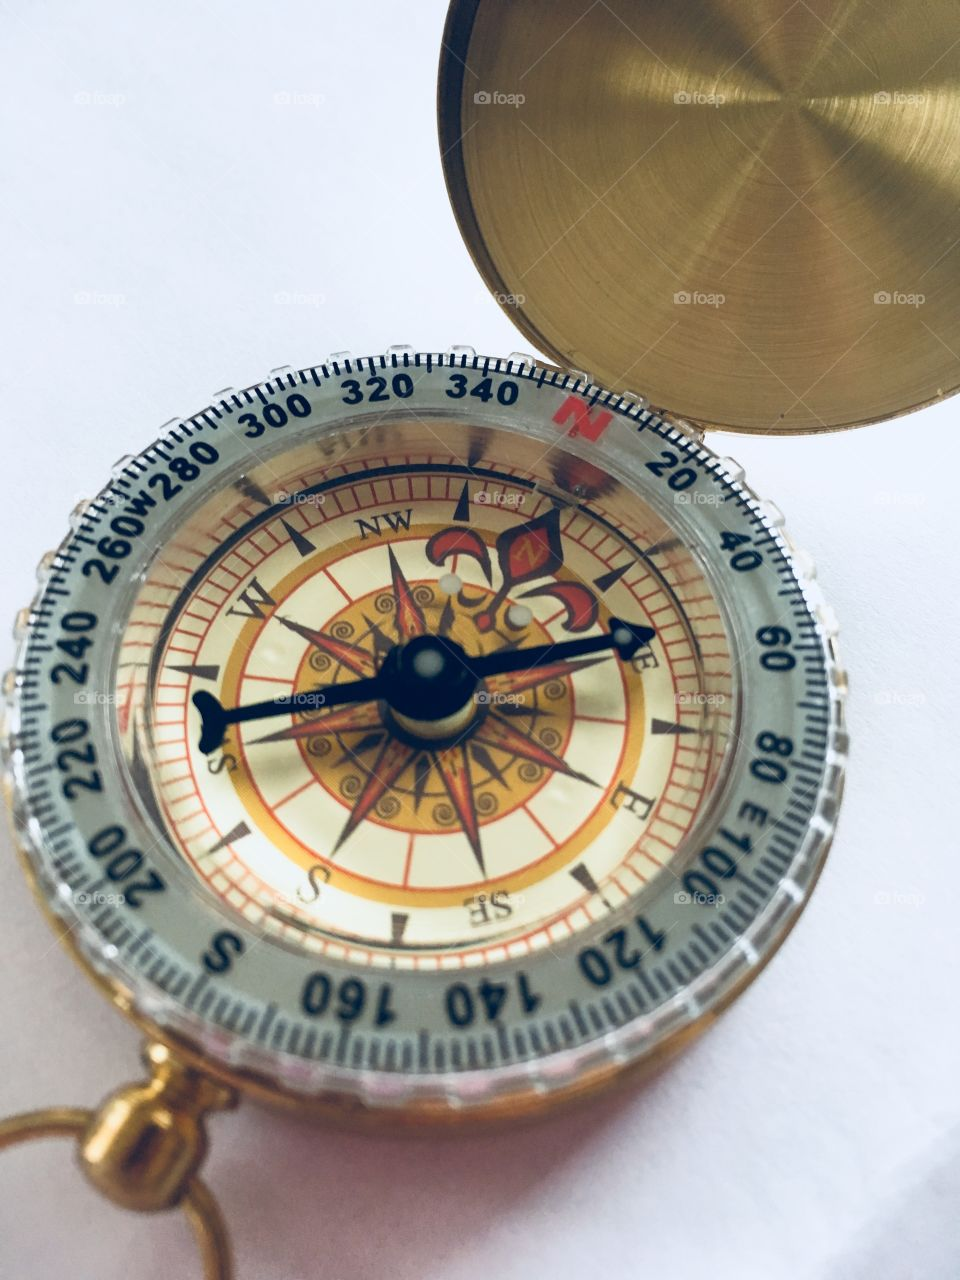 Gold and black compass facing North East direction.